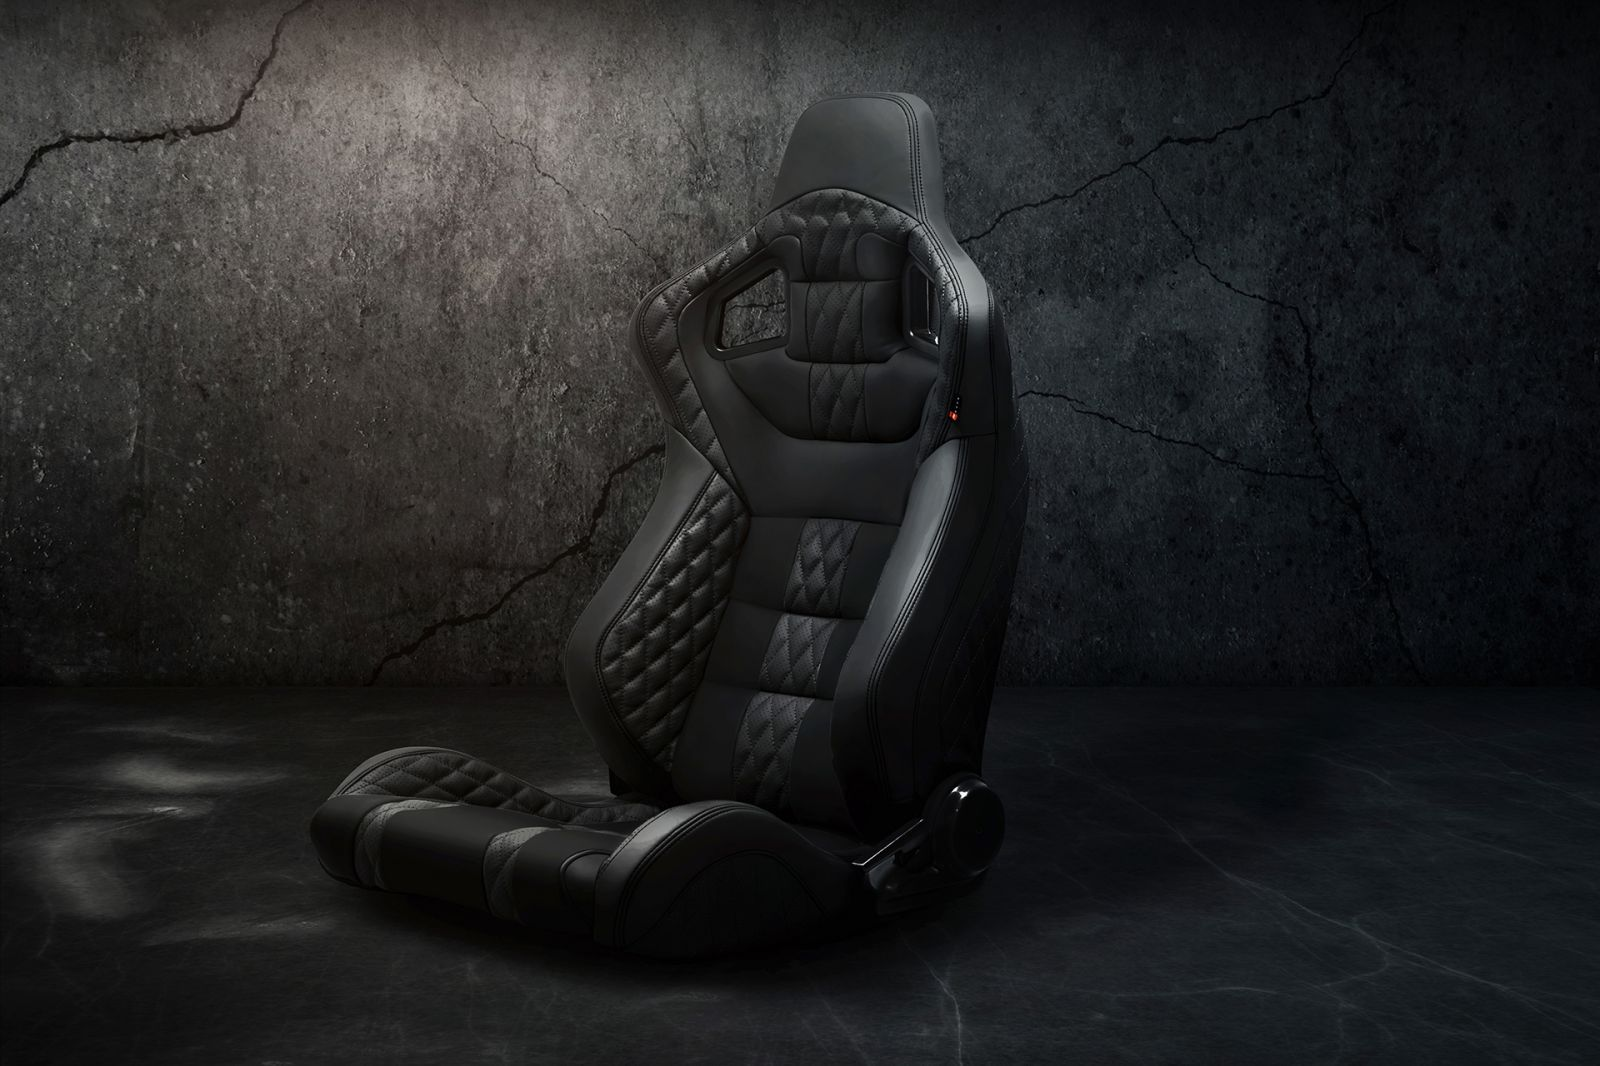 Jeep Wrangler JK (2007-2018) GTB Sports Seats - Project Kahn